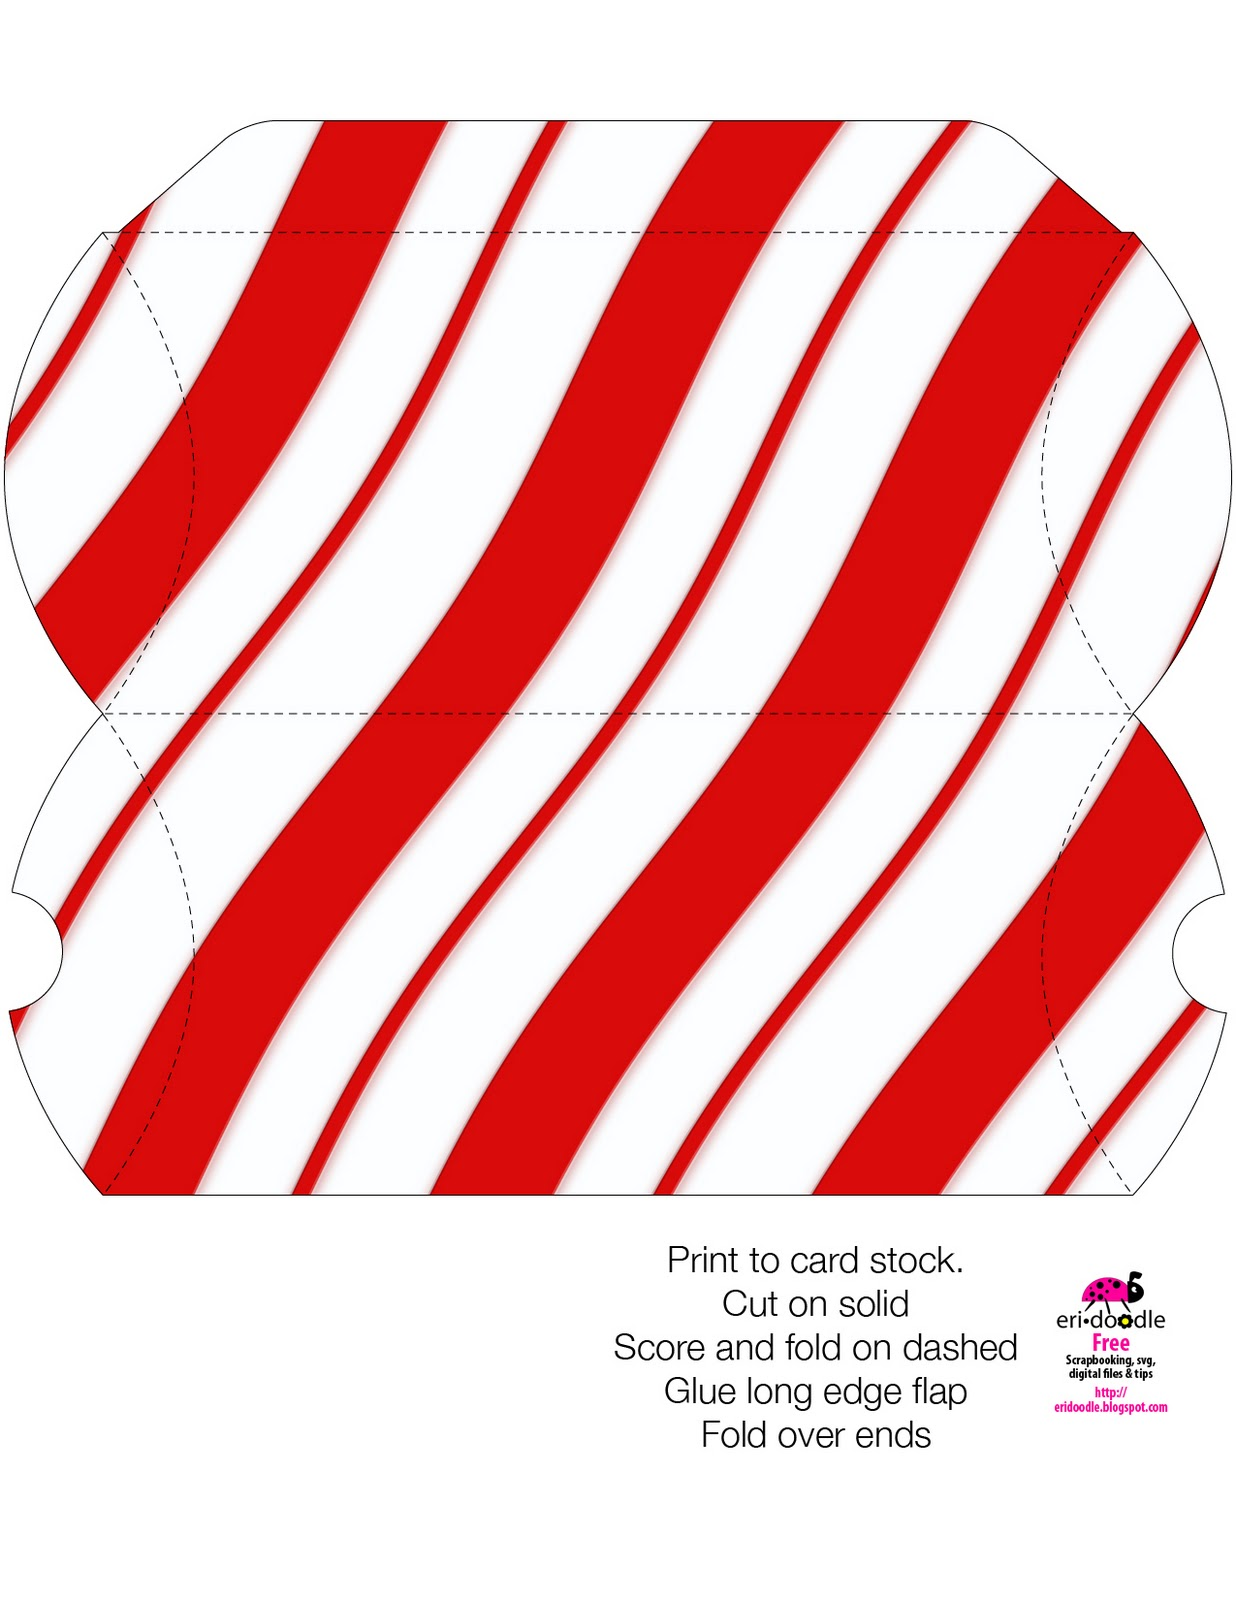 eri doodle designs and creations small candy cane gift box template